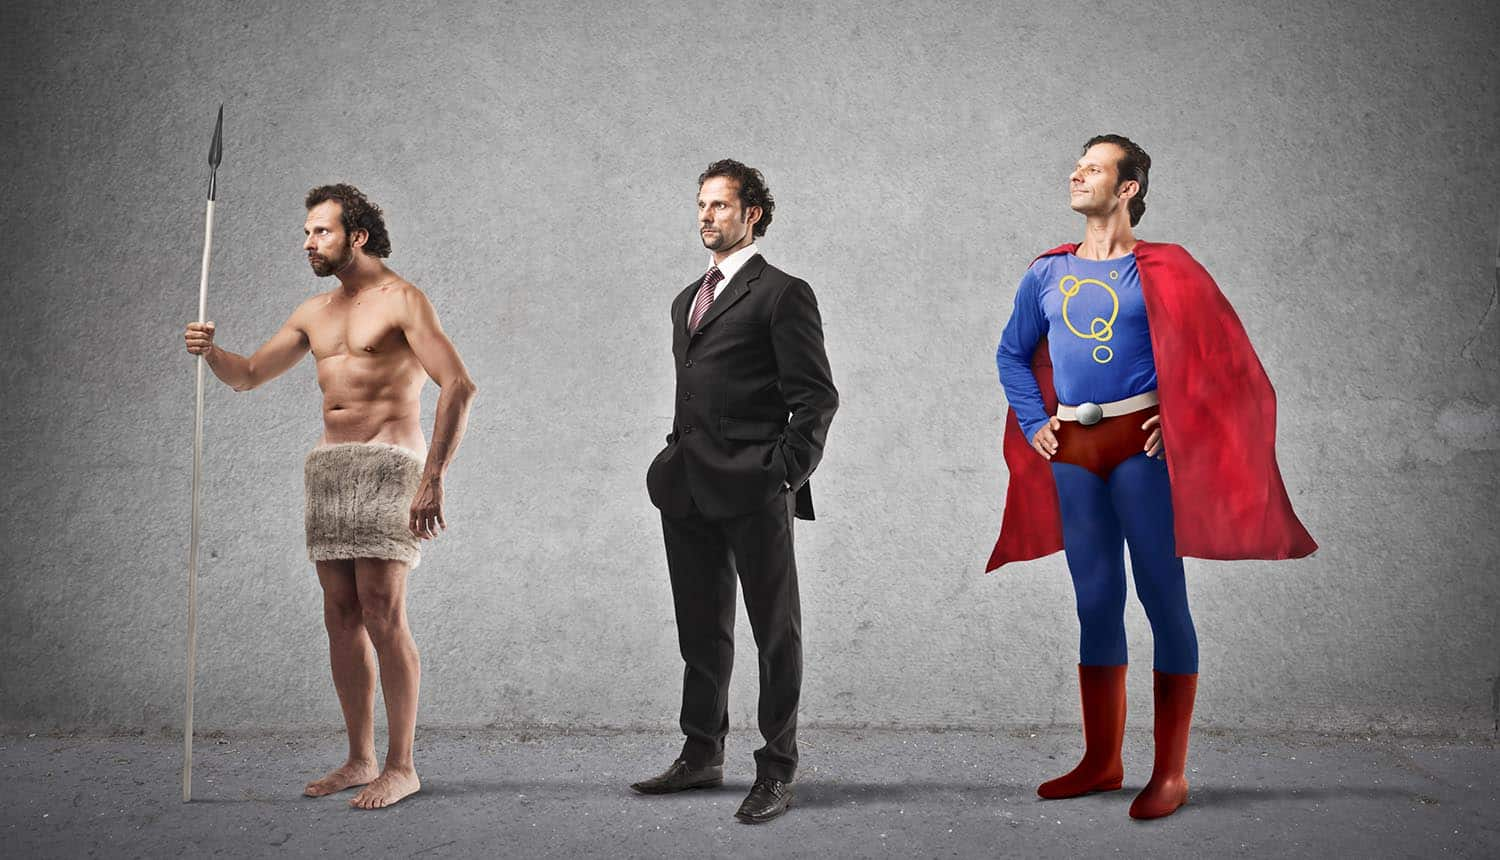 Image of caveman, businessman and superhero representing evolution of the role of the chief privacy officer in 2020